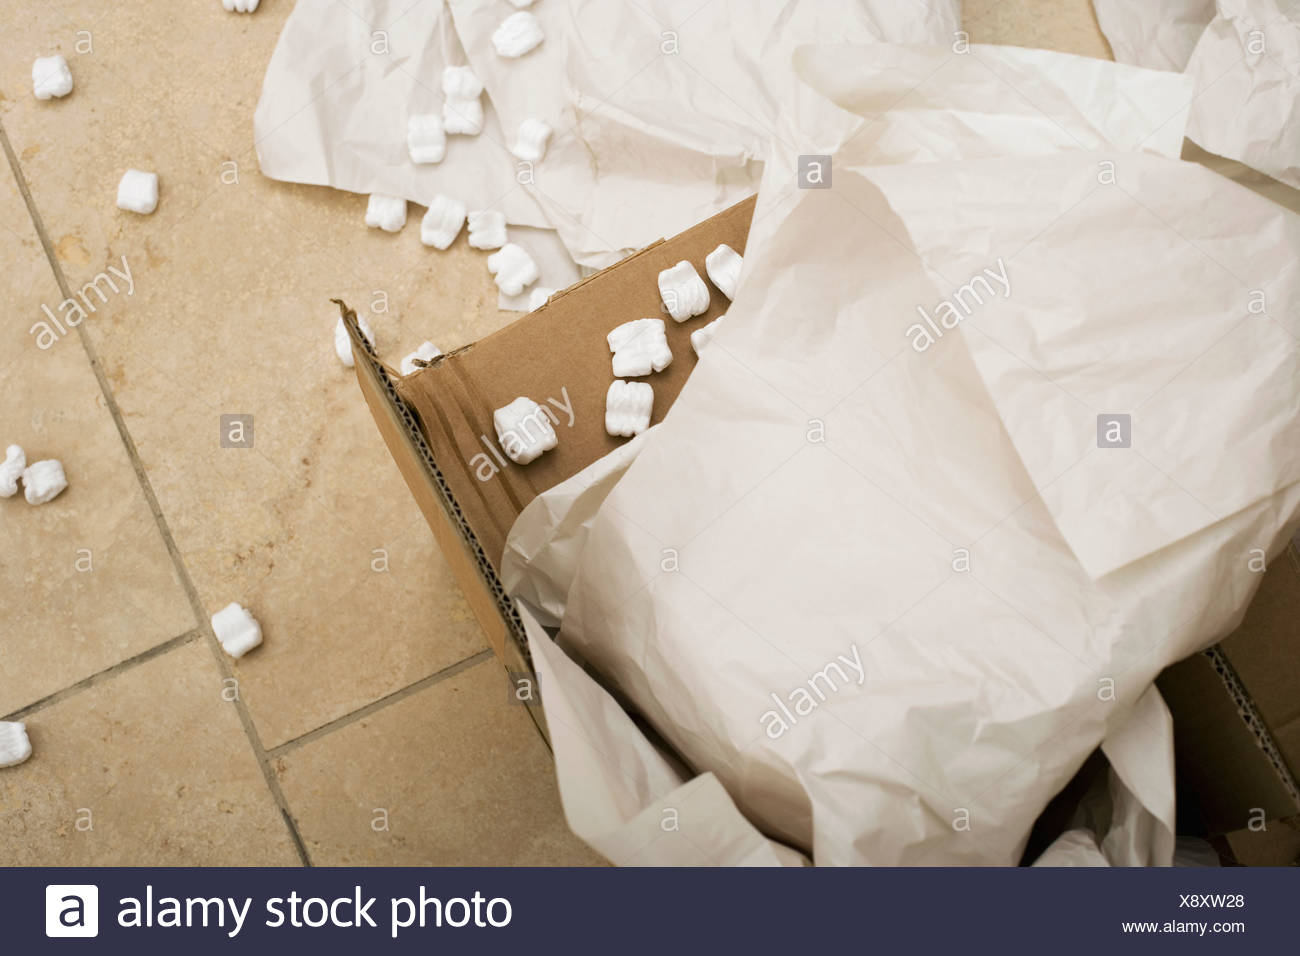 Paper and packing foam in open cardboard box close up Stock Photo